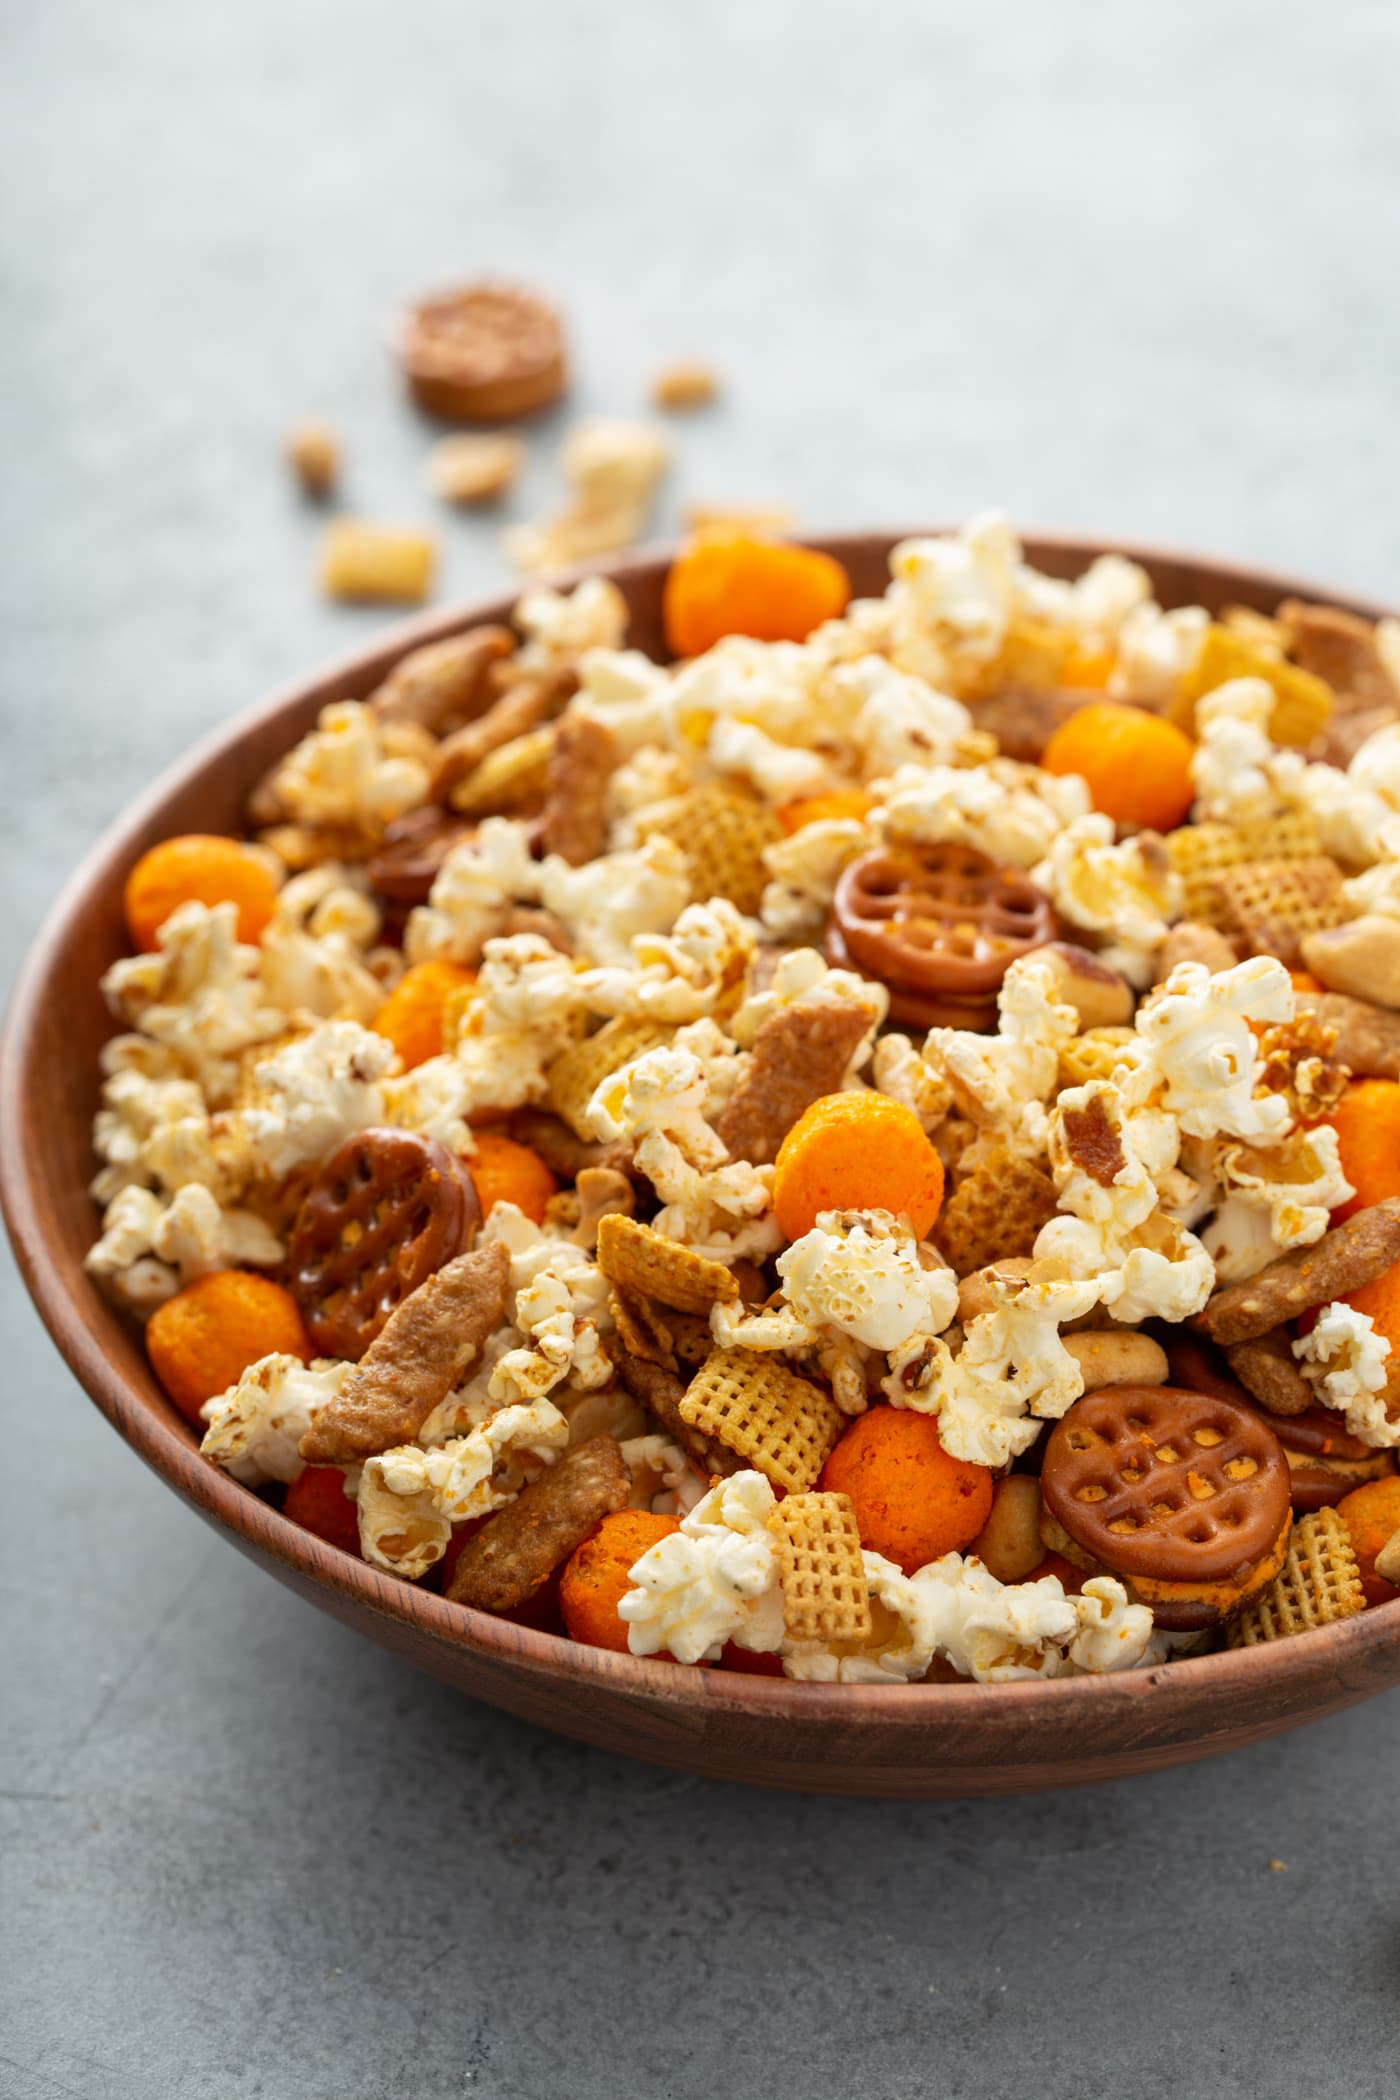 A bowl of March madness snack mix. It has popcorn, cheese balls, pretzels, peanuts, and sesame sticks.